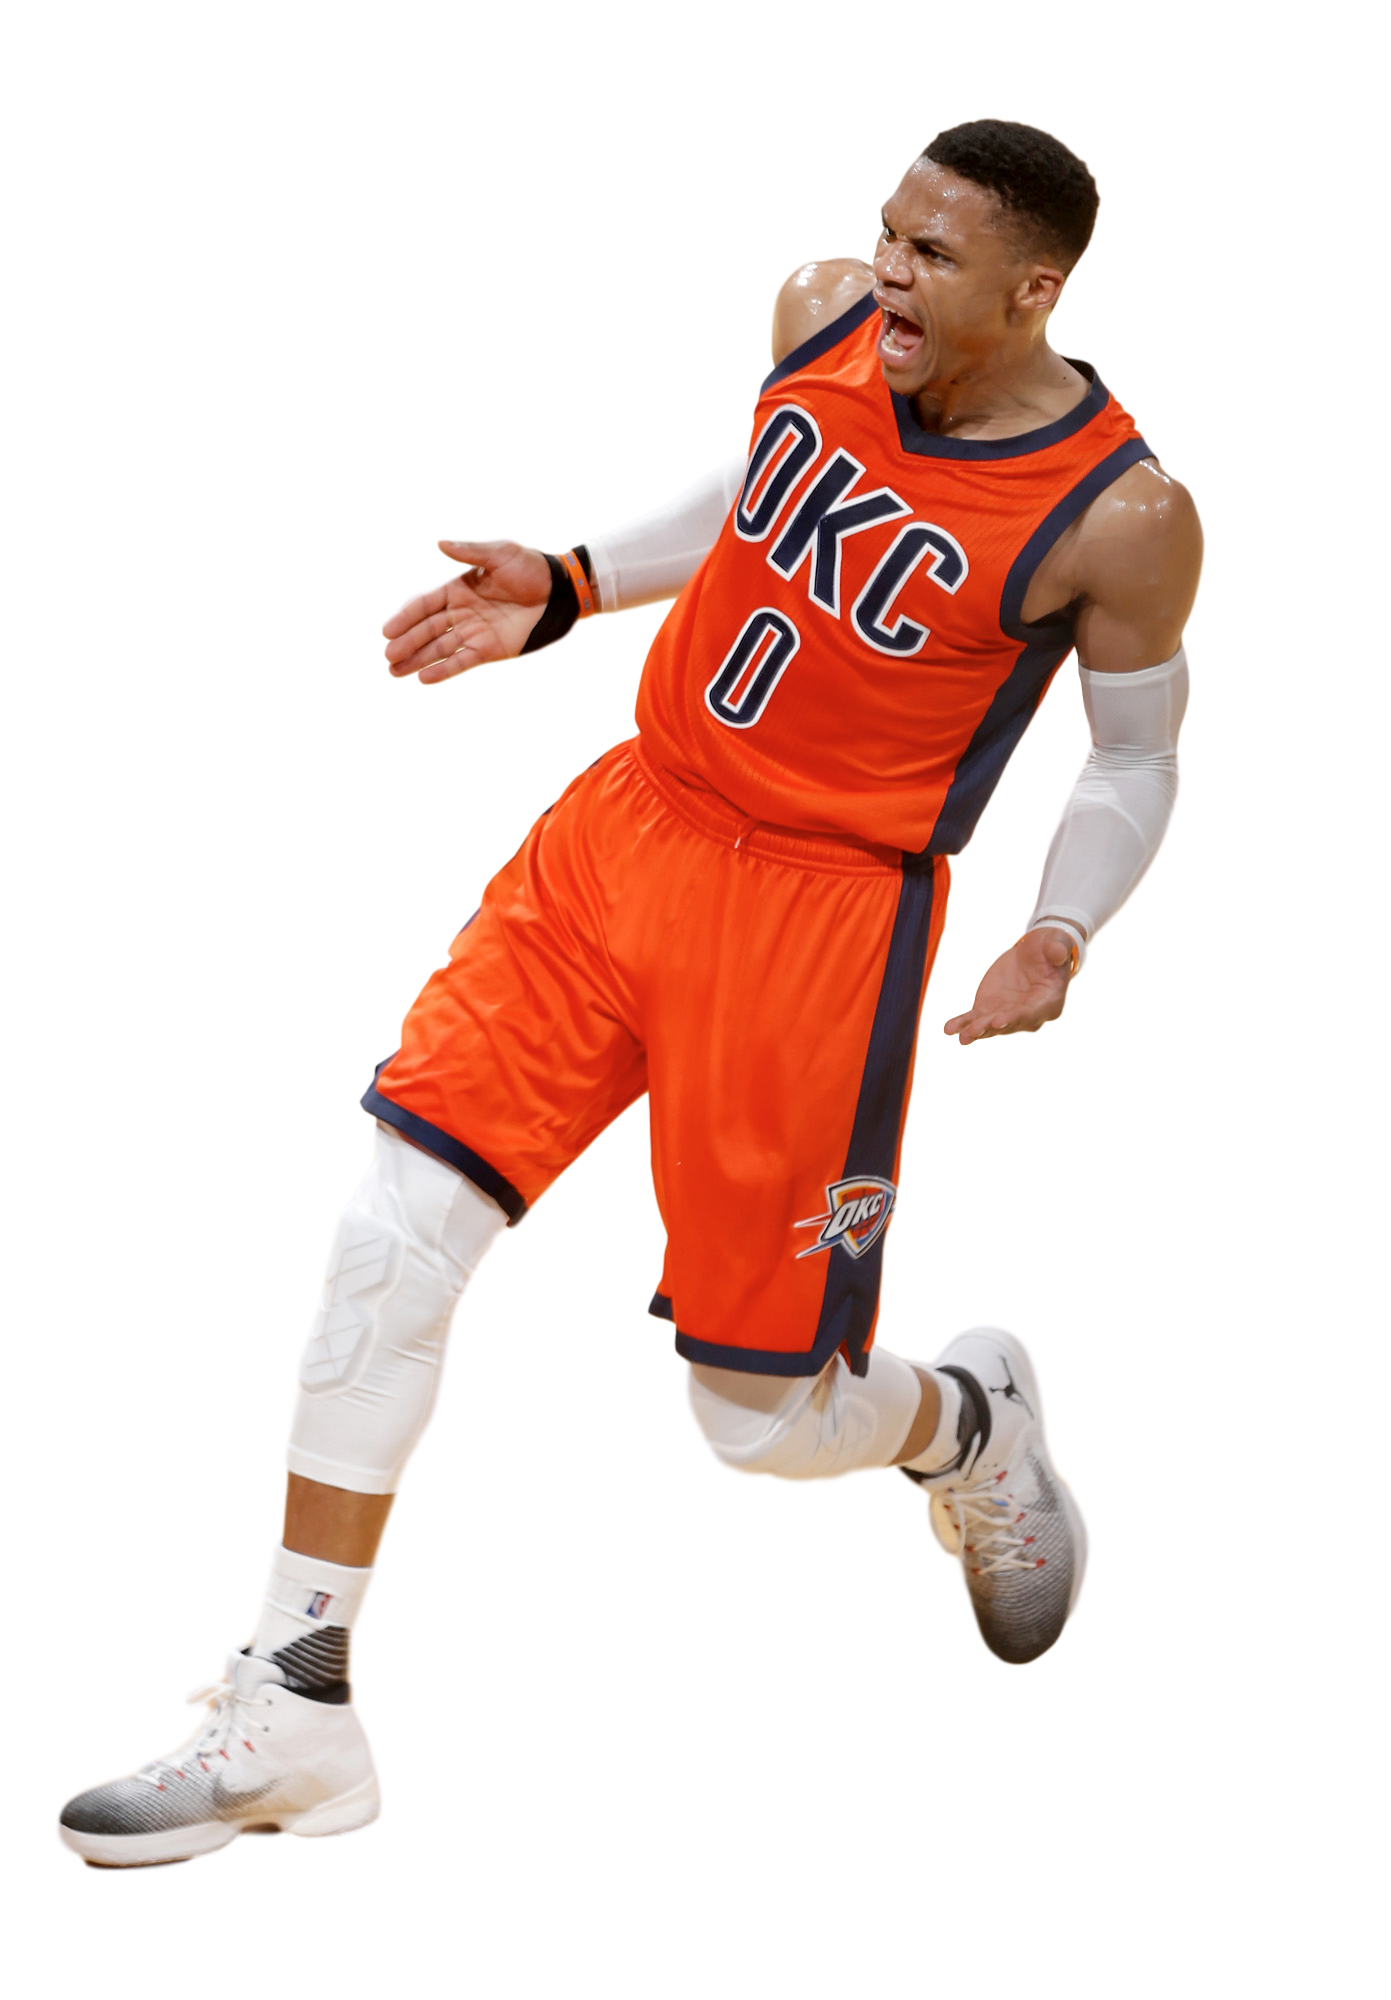 Russell Westbrook Face Png #505214.